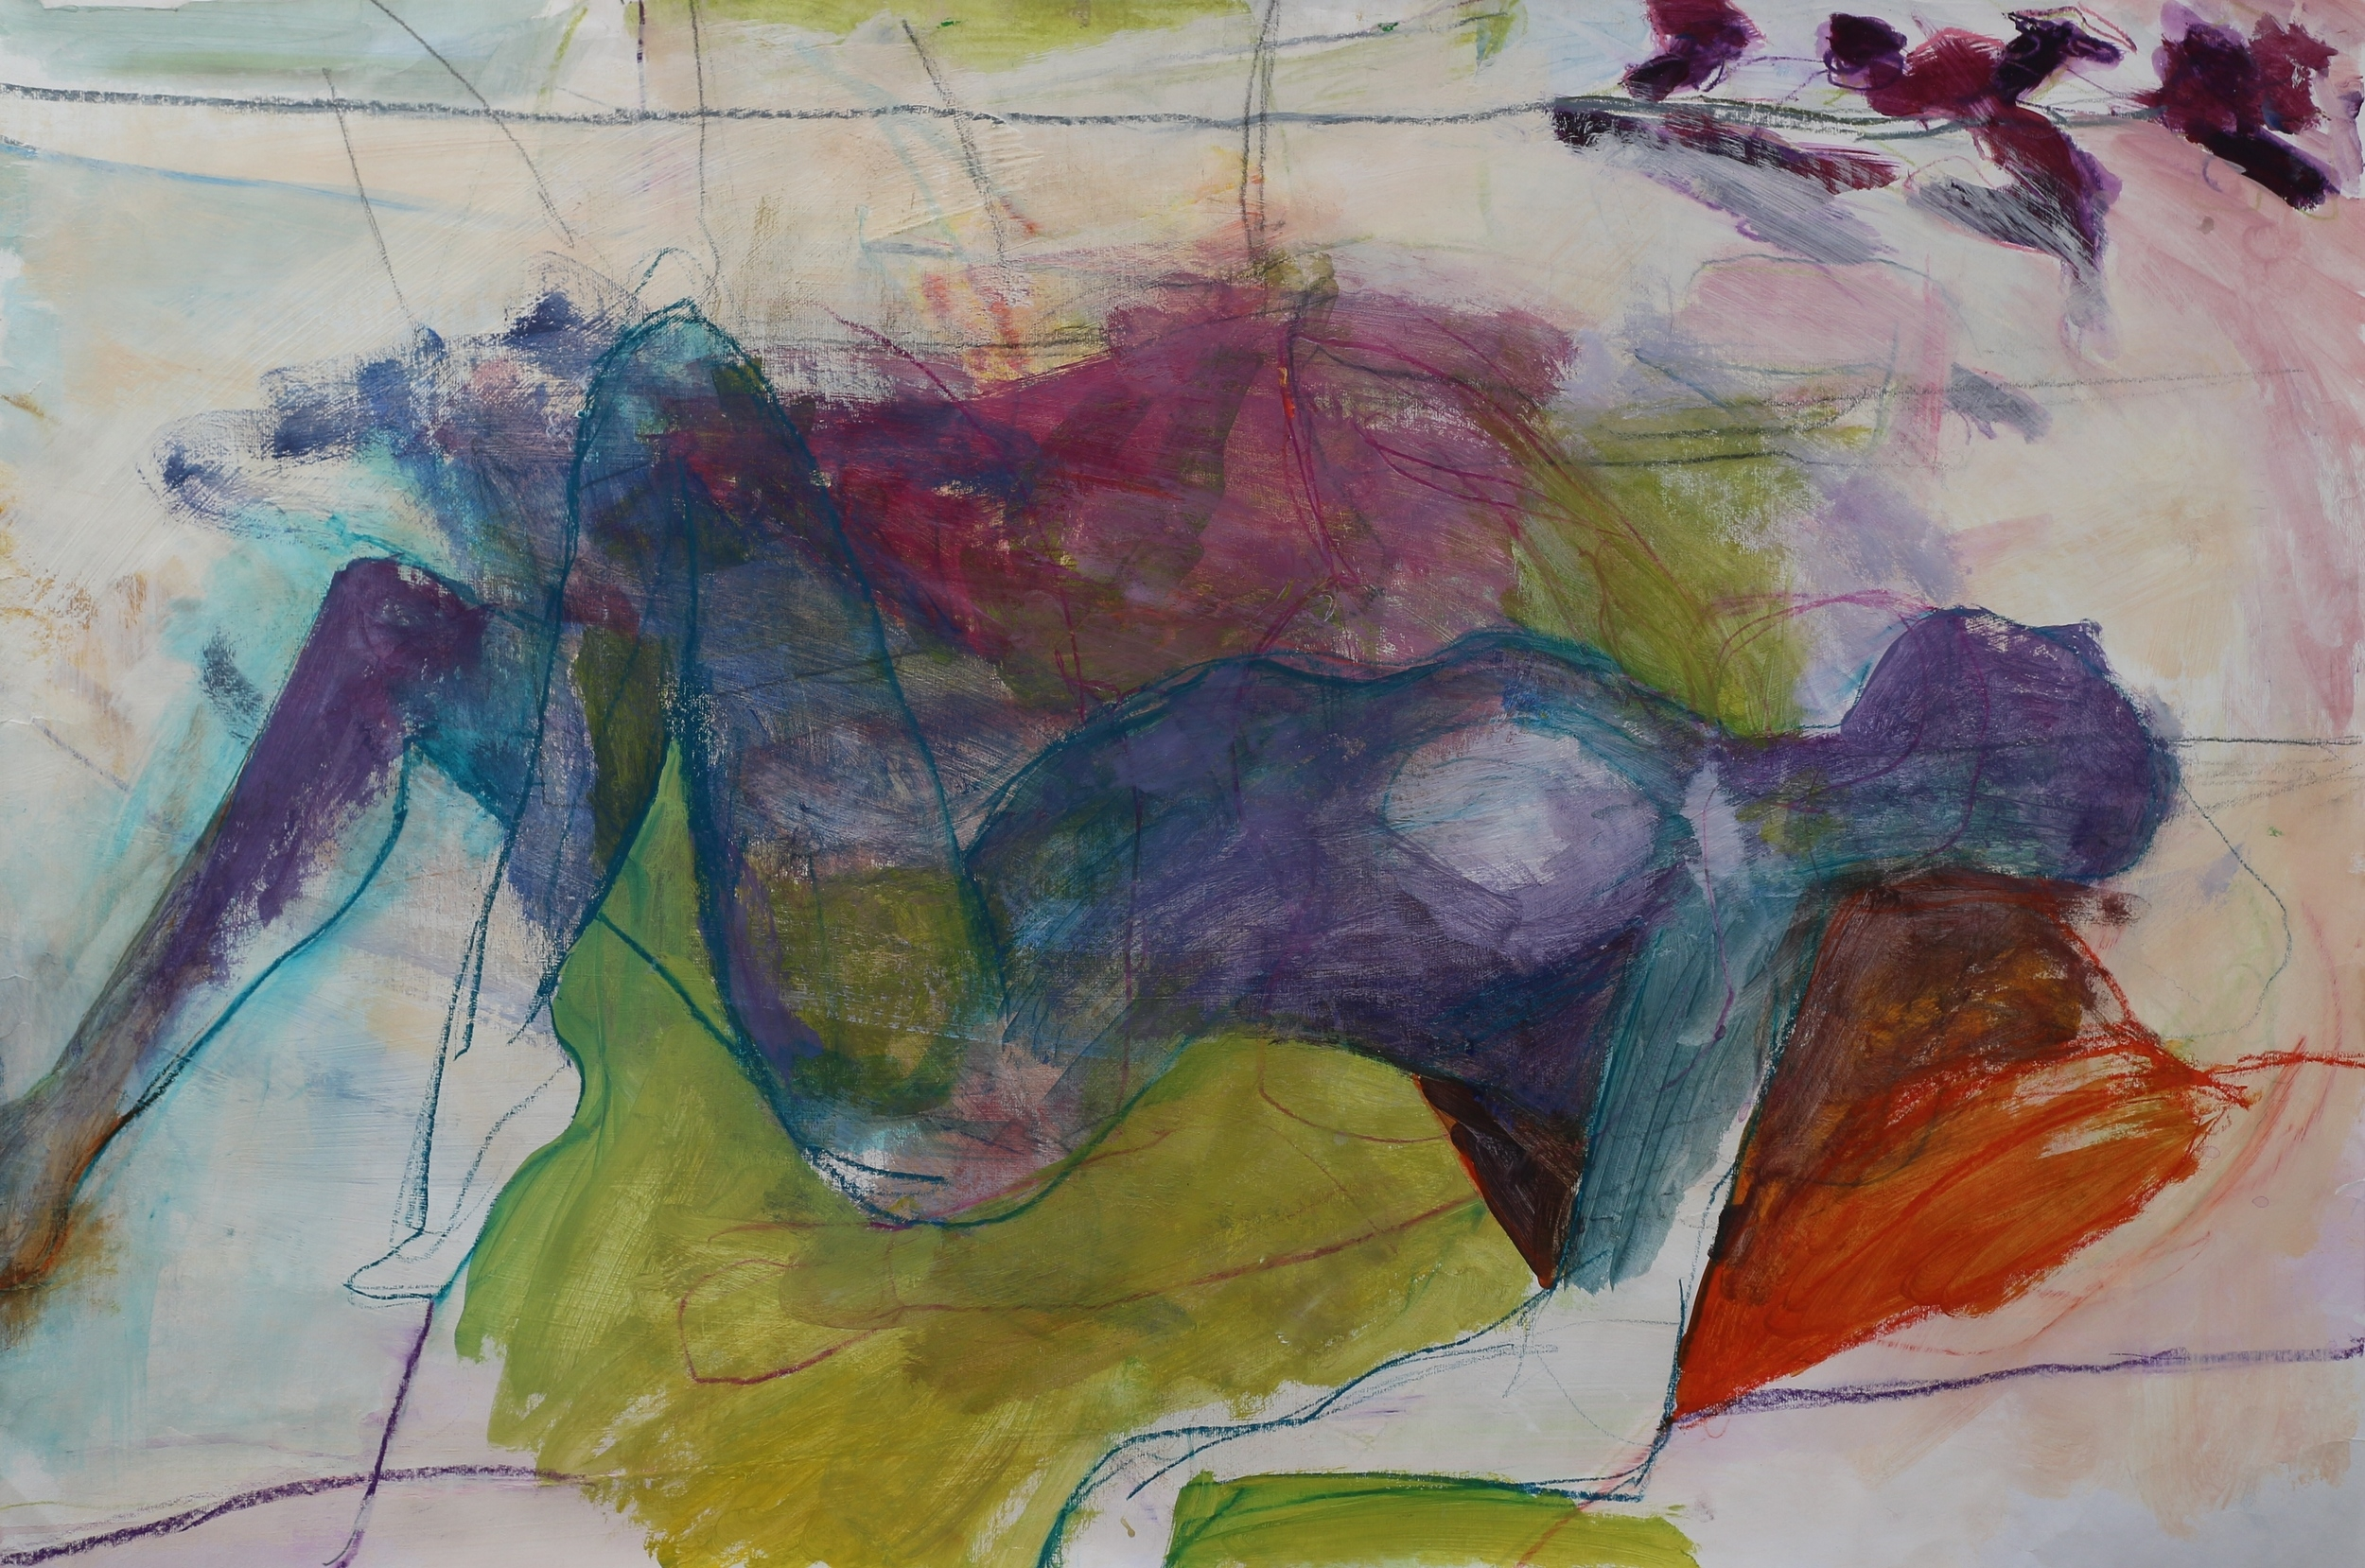 """Repose in layers, 24"""" x 36"""" acrylic and mixed media on paper"""